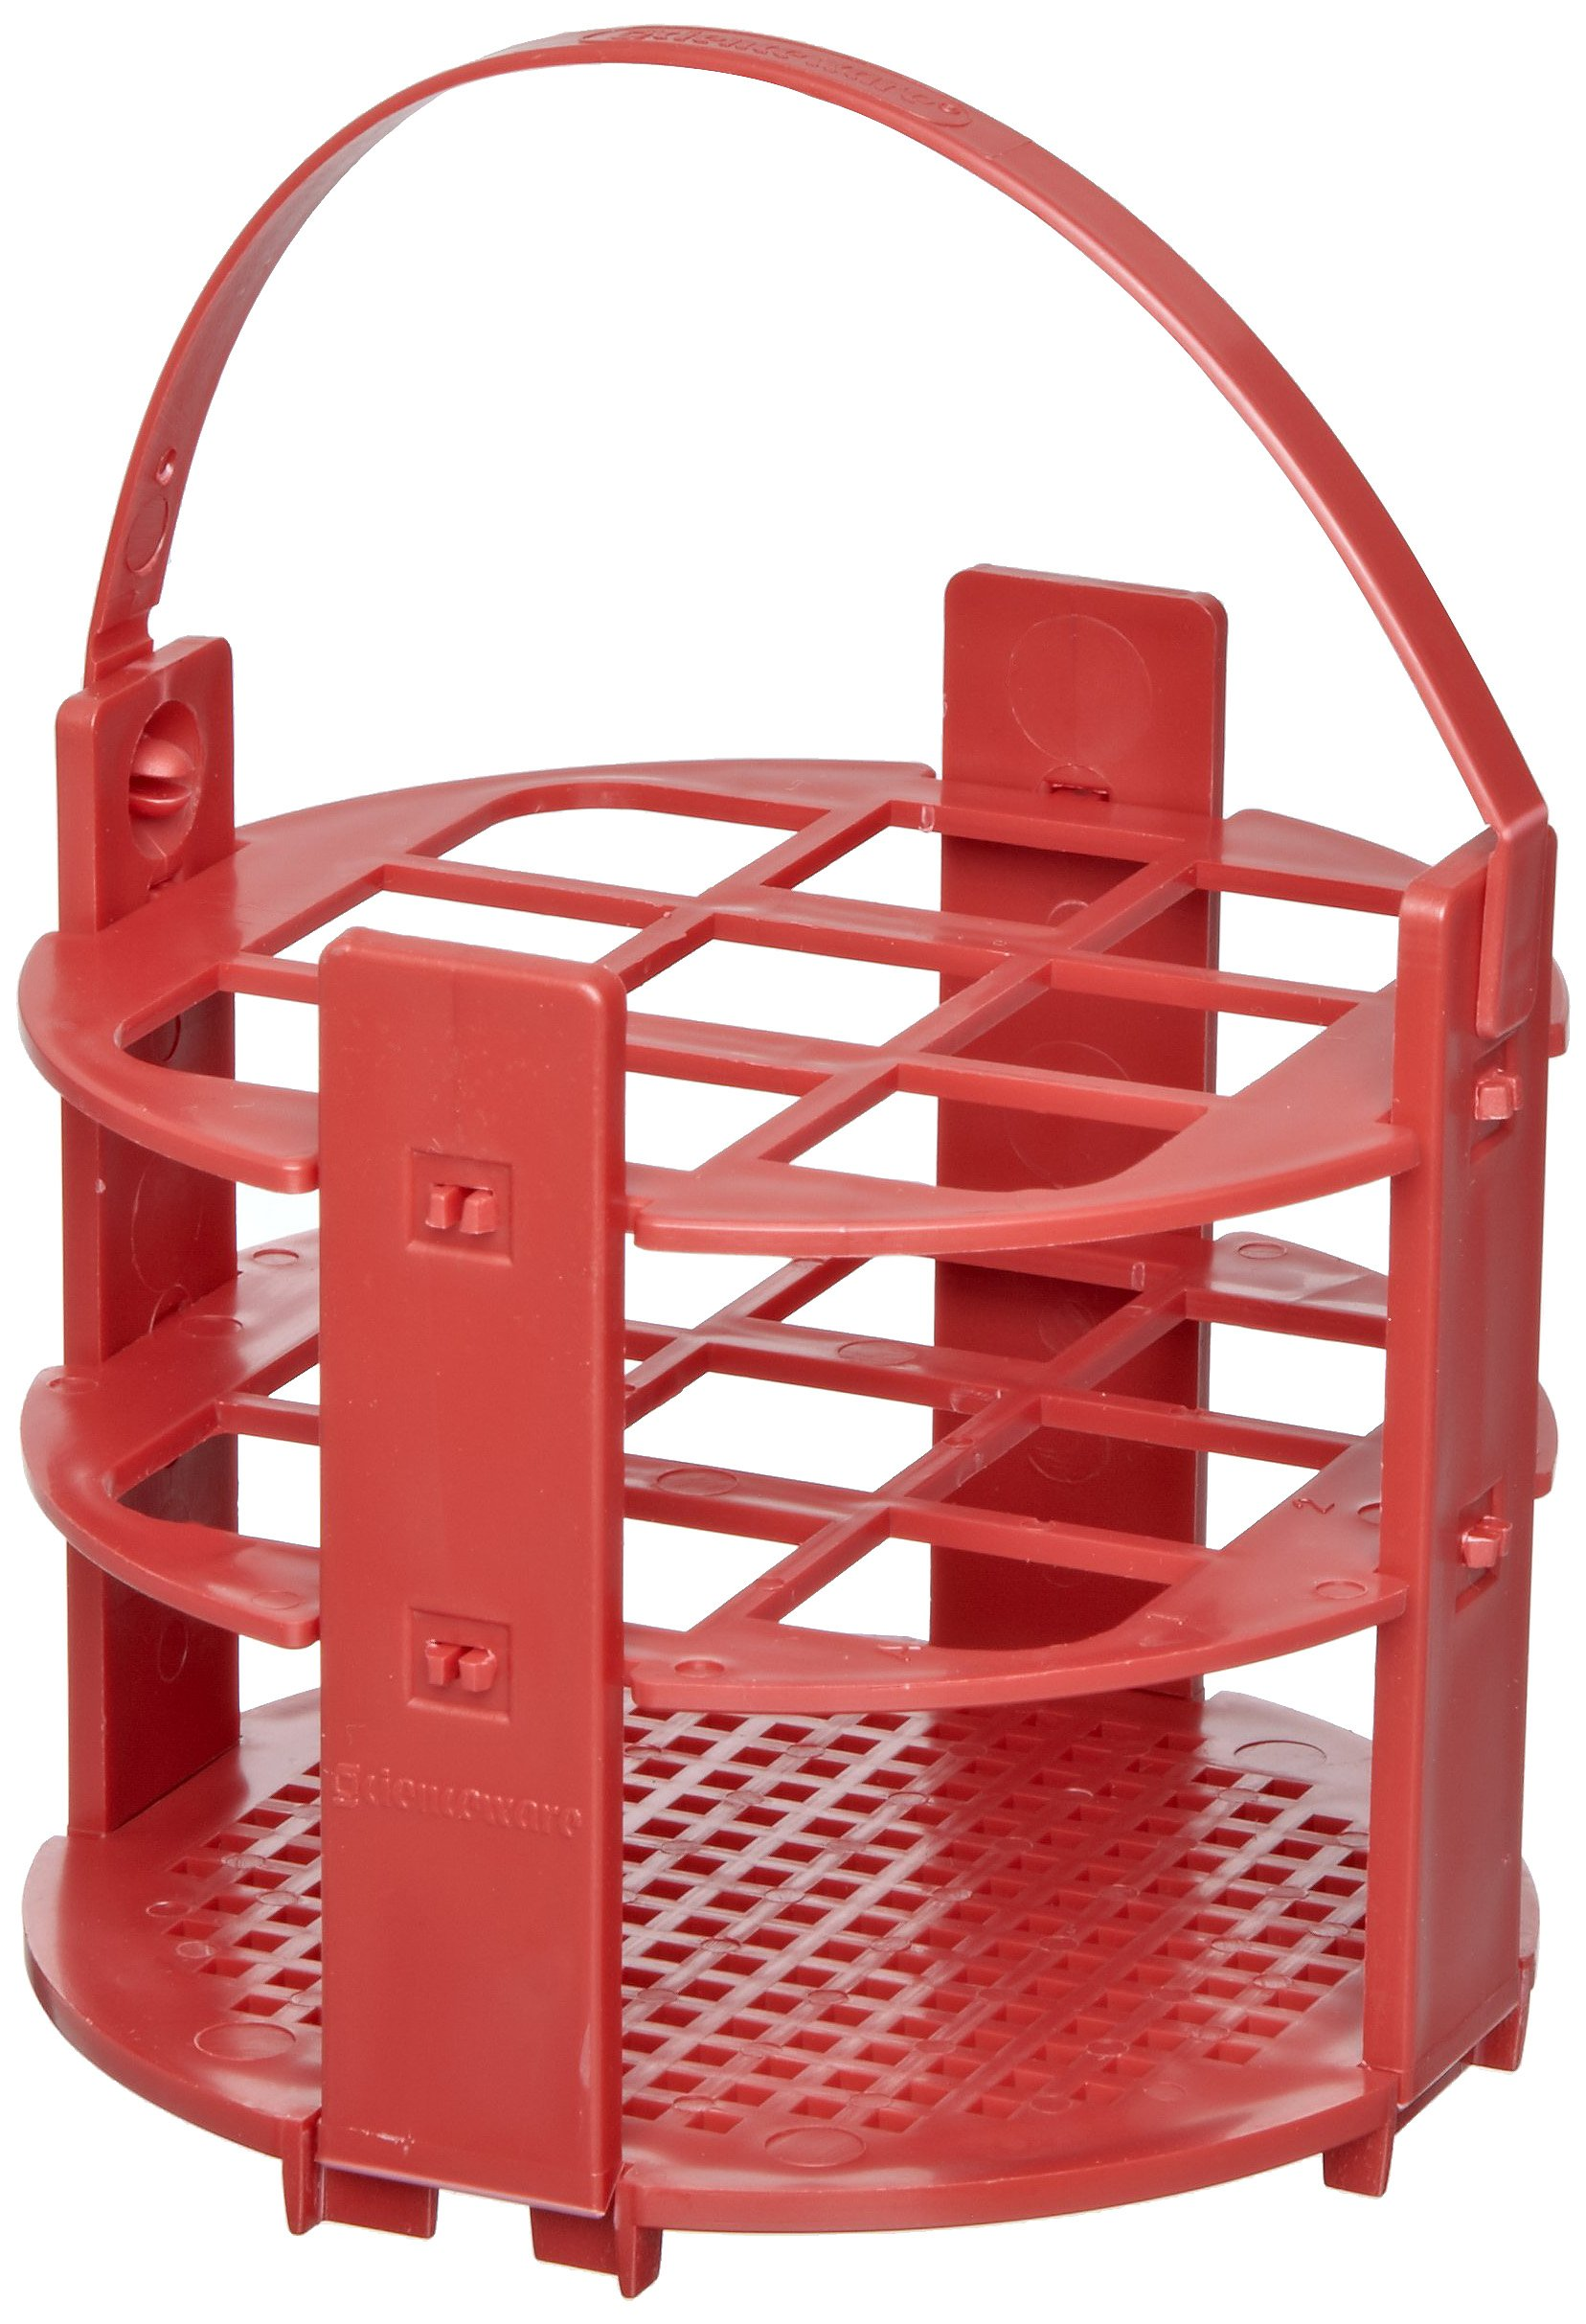 Bel-Art F18743-1020 No-Wire Round Test Tube Rack; 16-20mm, 9 Places, Red, Polypropylene